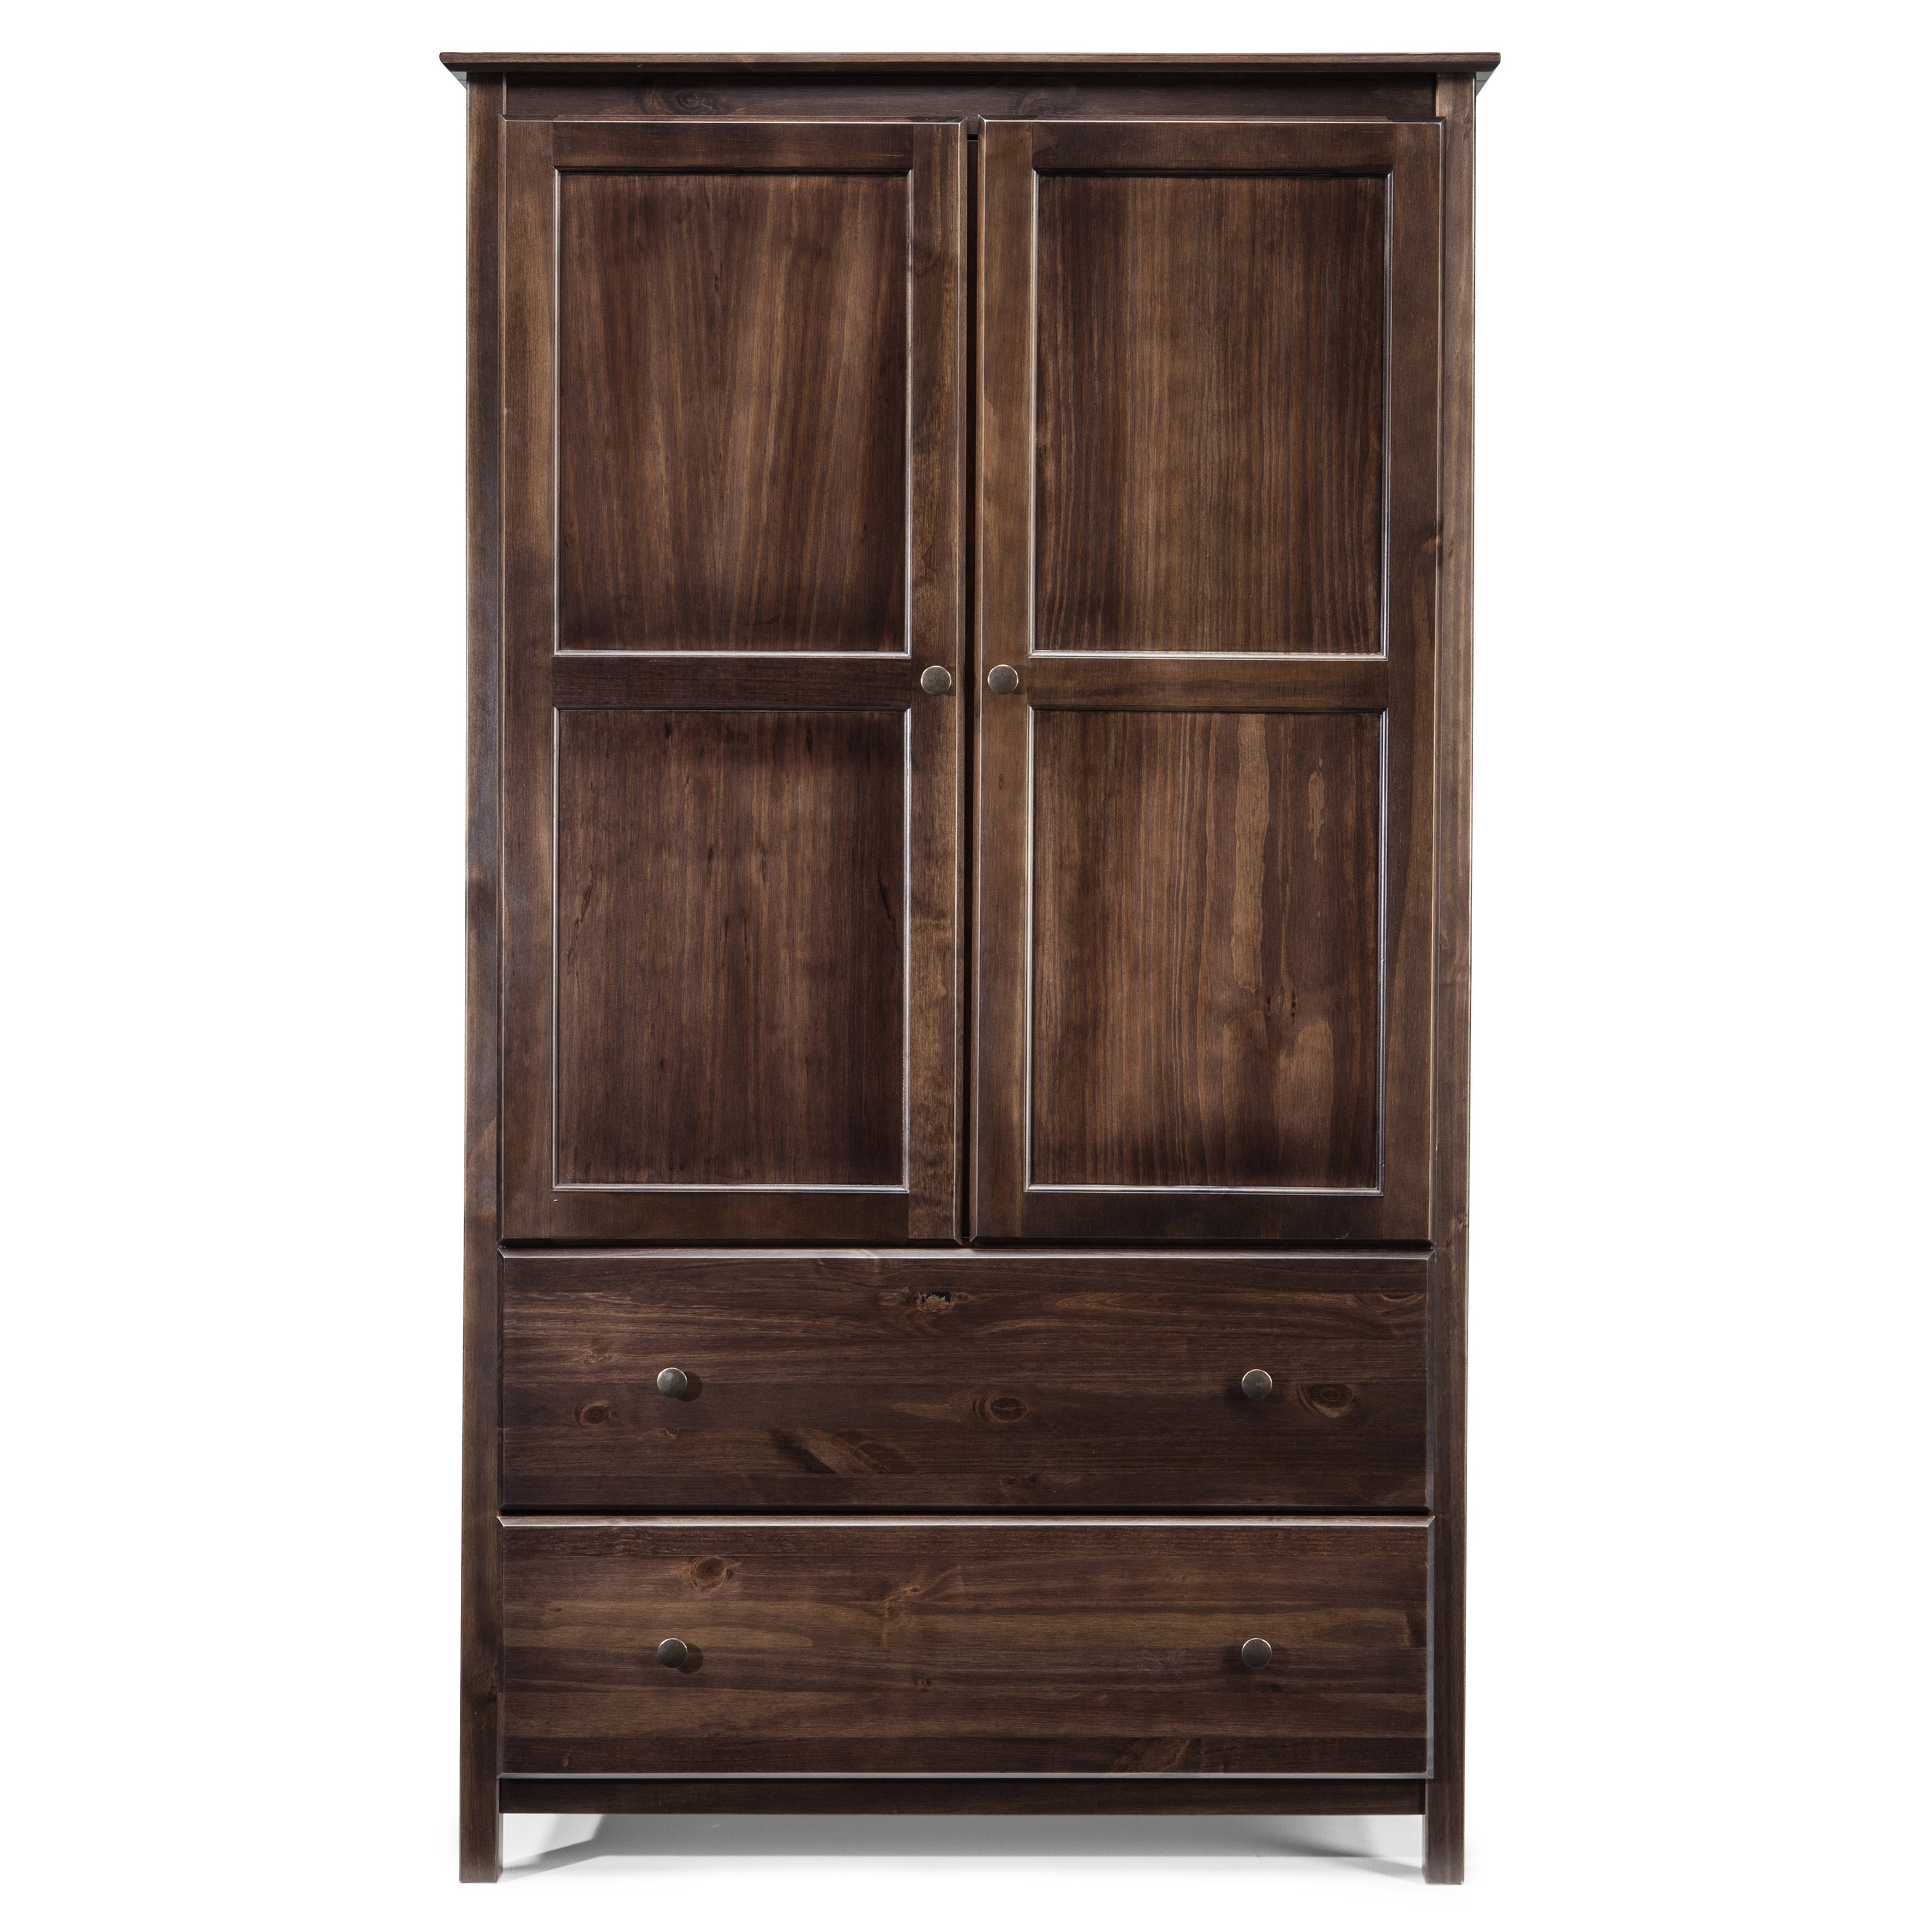 Grain Wood Furniture Shaker 2 Door Solid Wood Armoire Espresso Finish    Free Shipping Today   Overstock.com   17180214